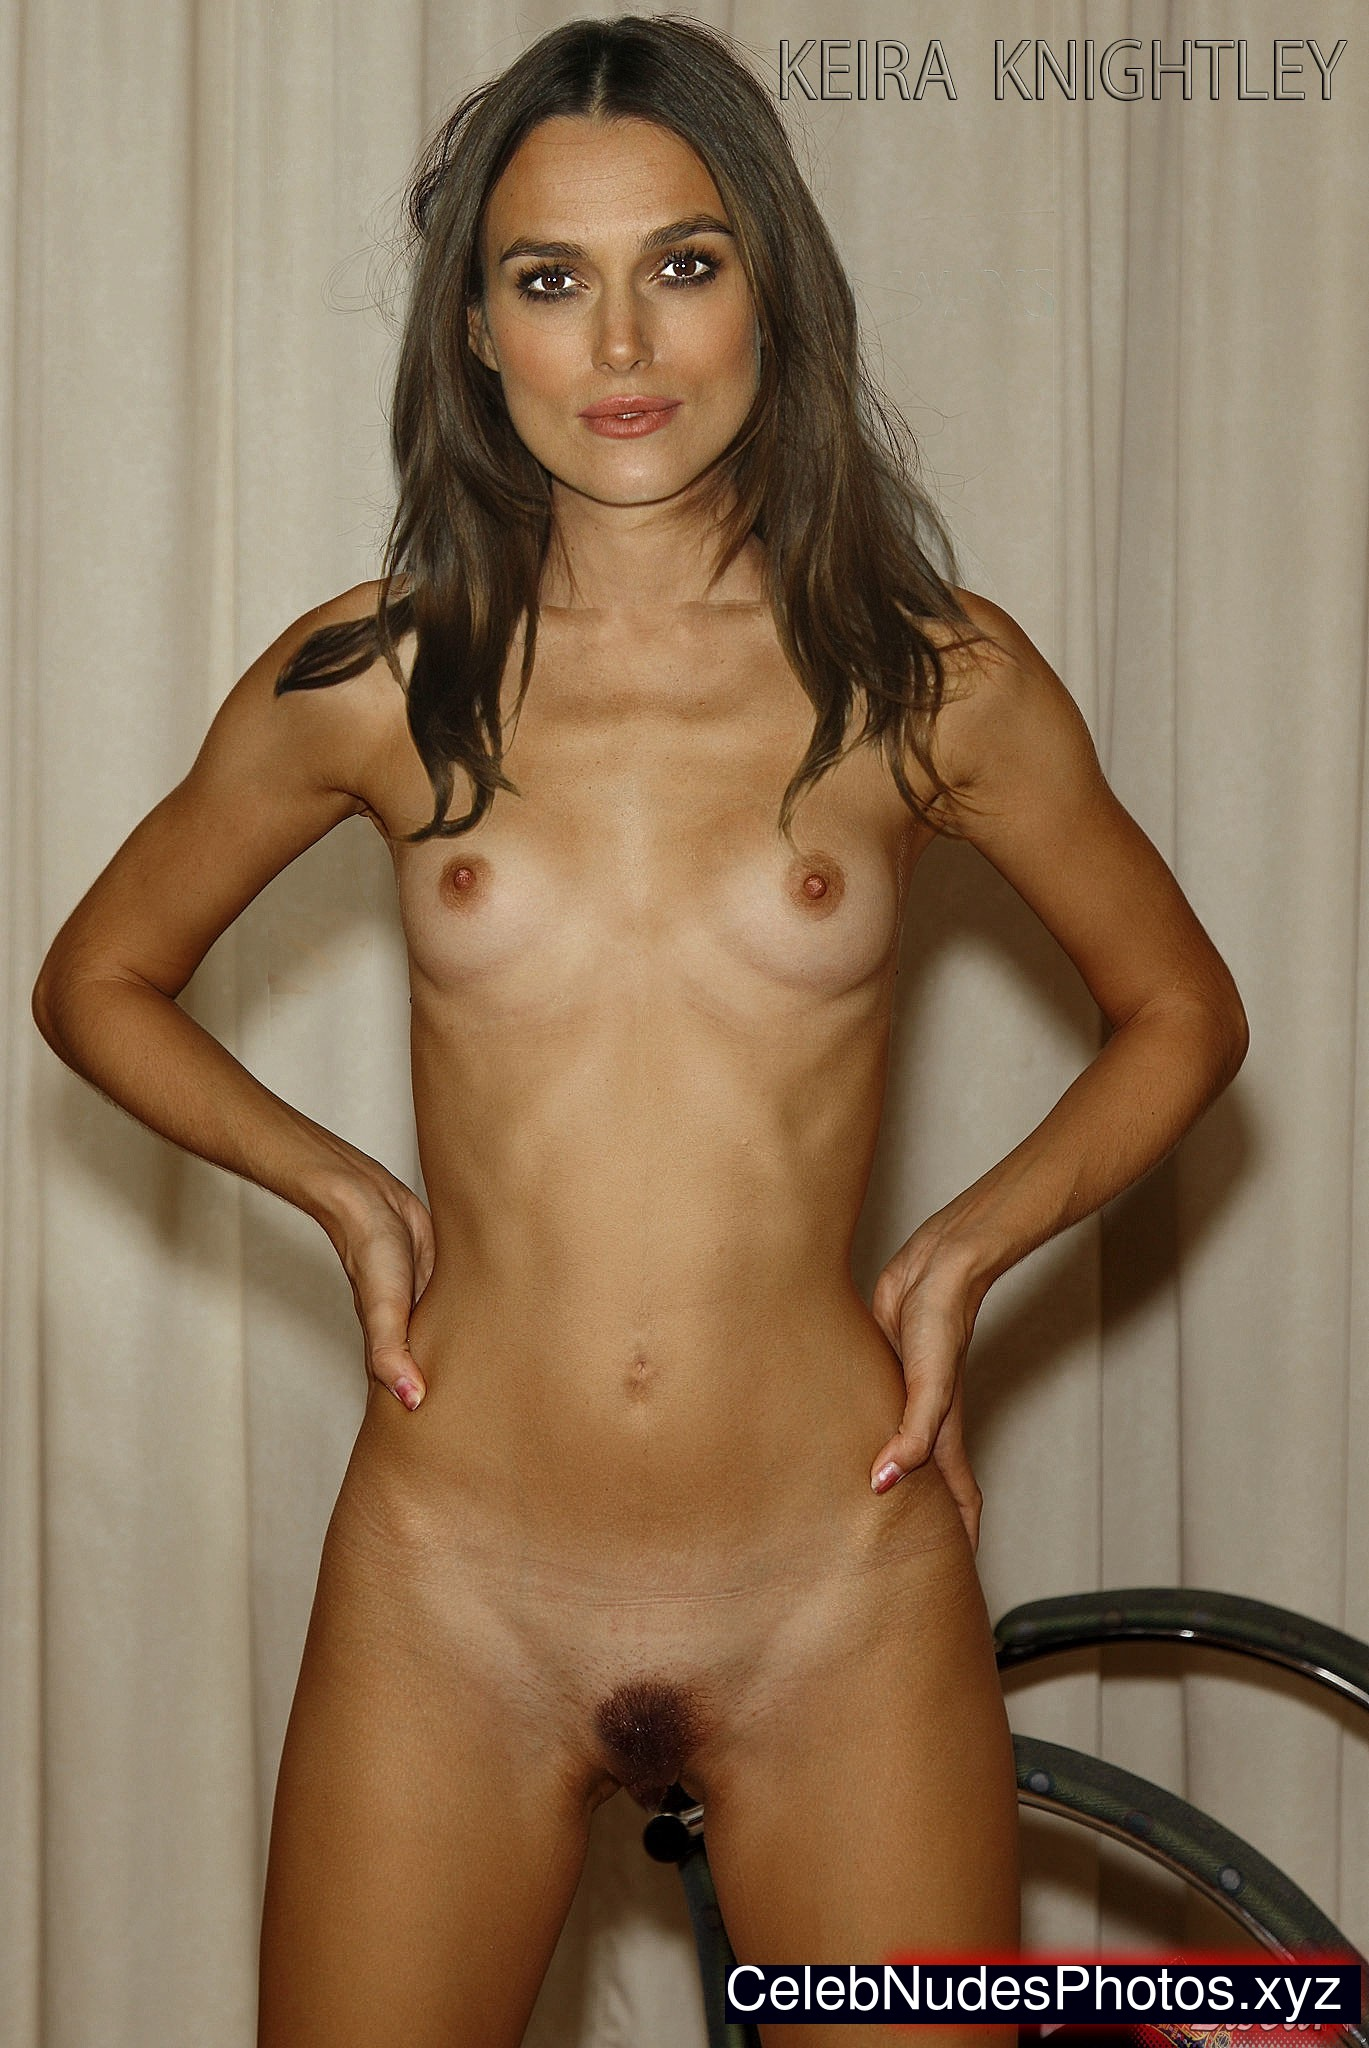 Are mistaken. Keira knightley nudes videos free consider, that